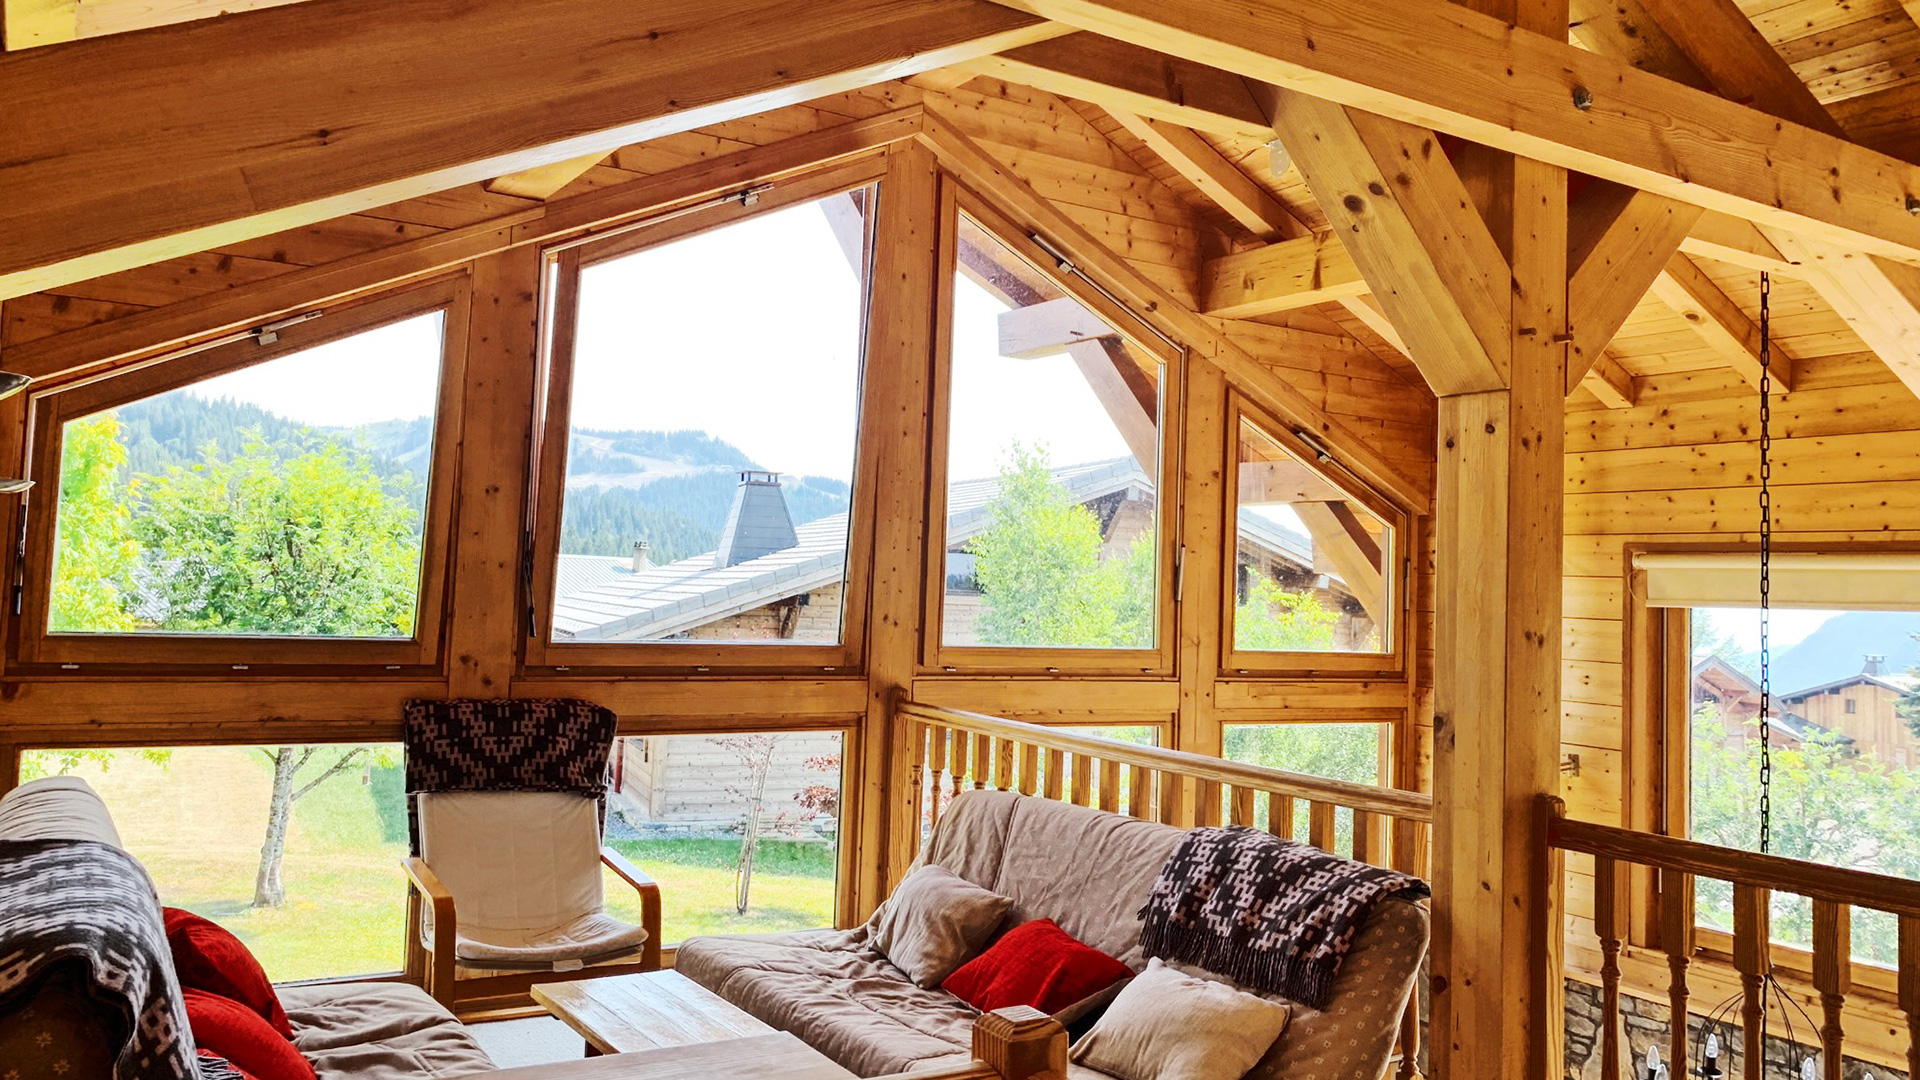 Chalet Uxello Chalet, France